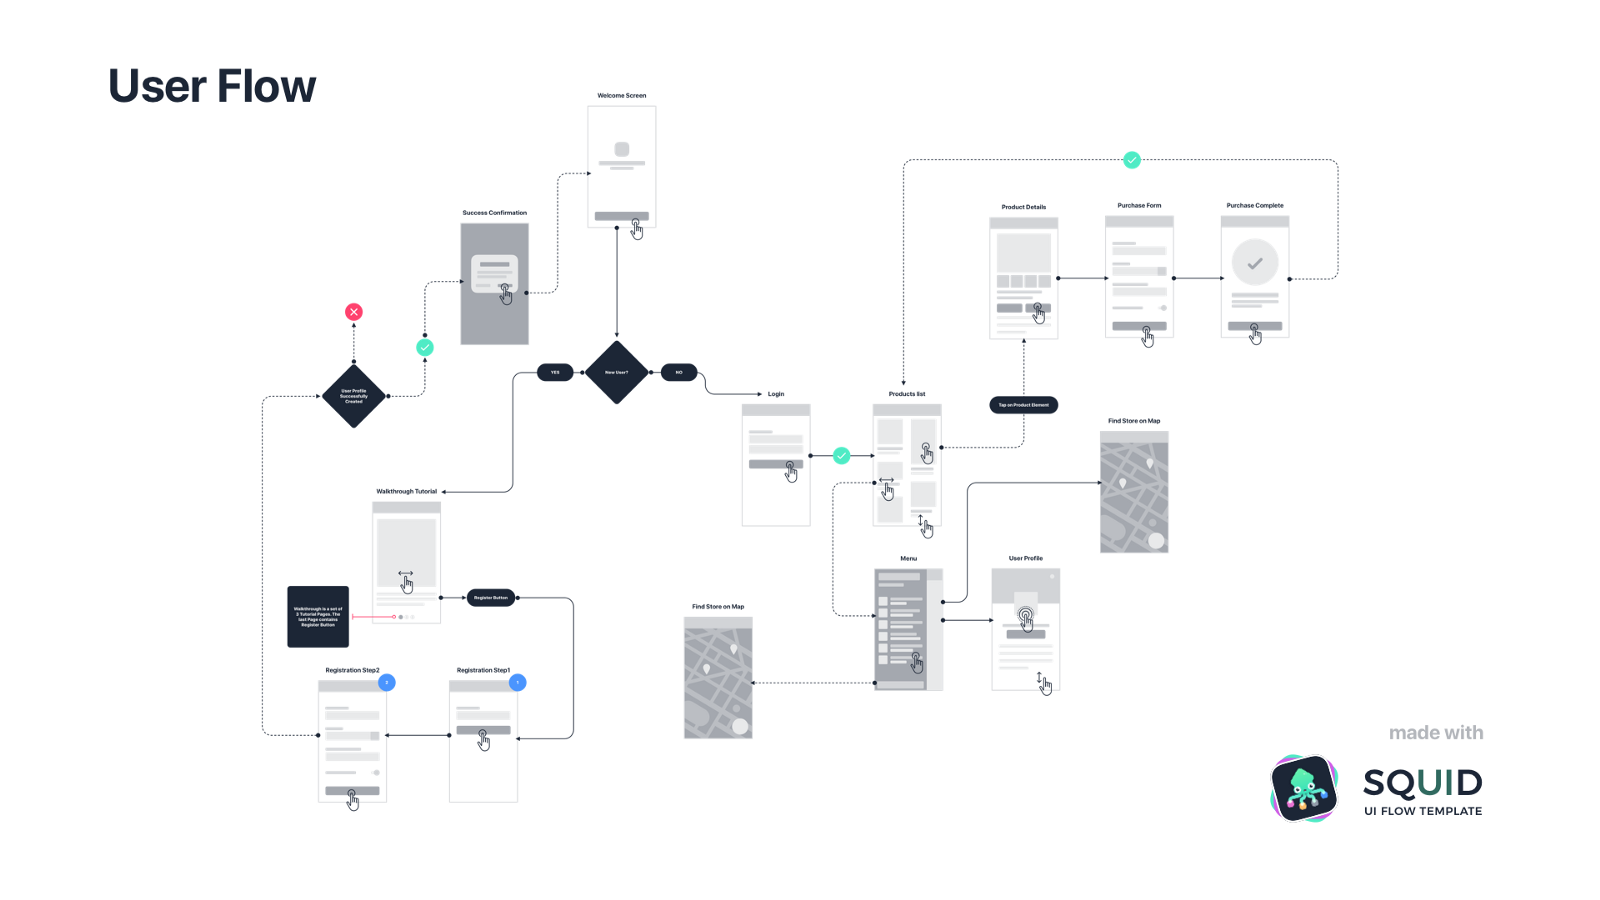 ui flow diagram